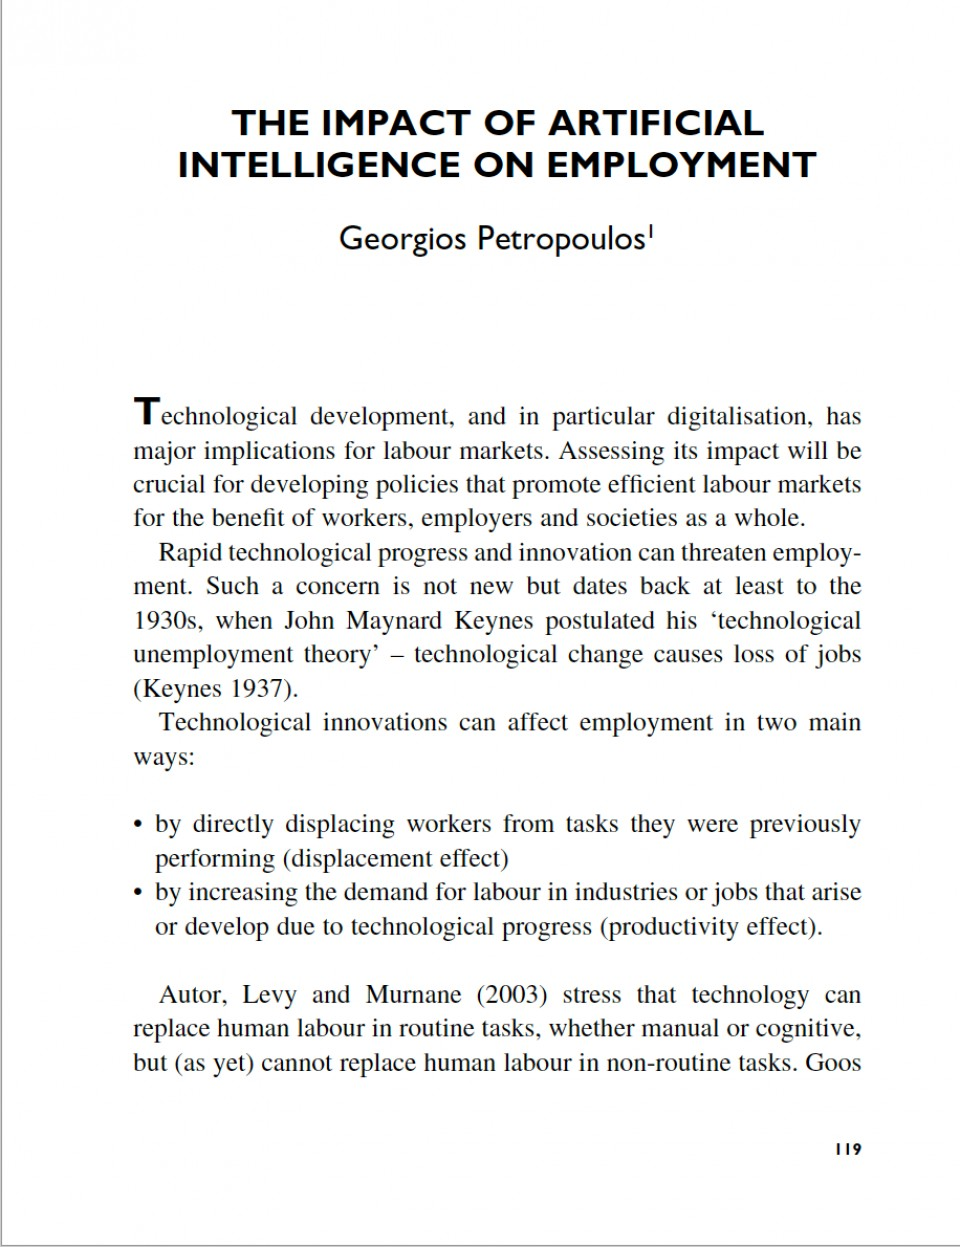 005 Screen Shot At Artificial Intelligence Research Sensational Paper 2018 Pdf Topics 960